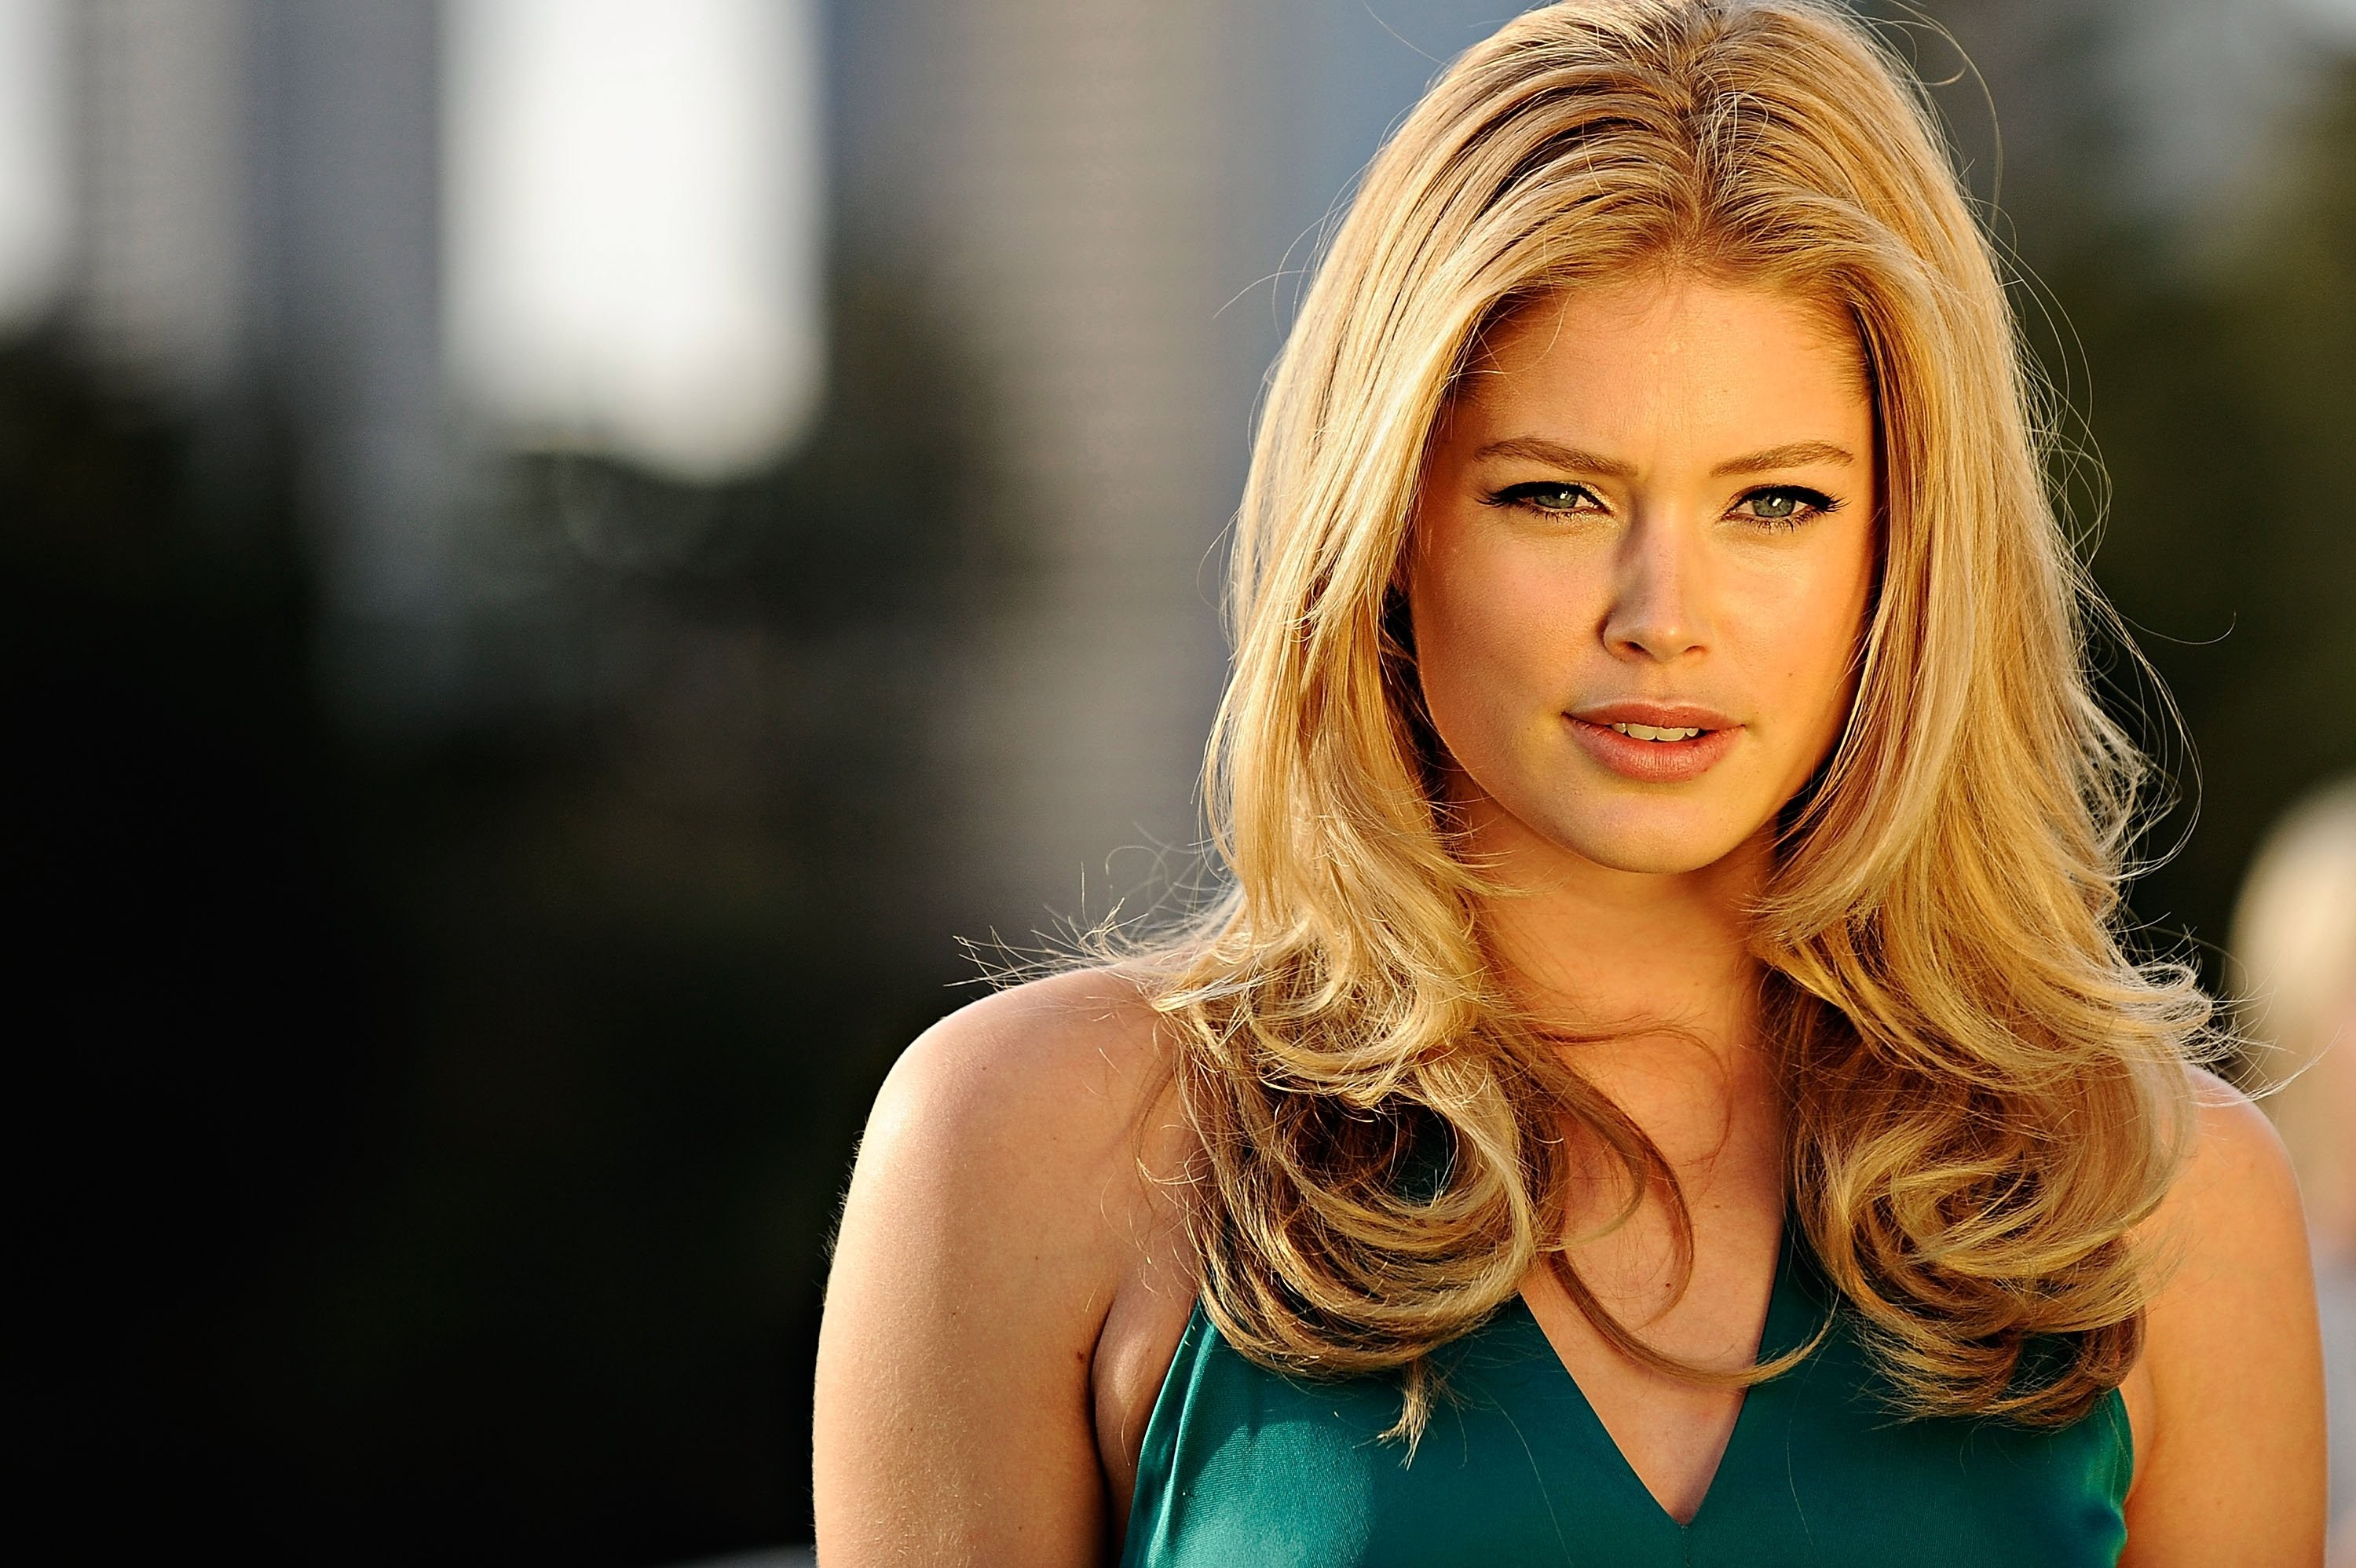 doutzen kroes full hd wallpaper and background image | 3000x1997